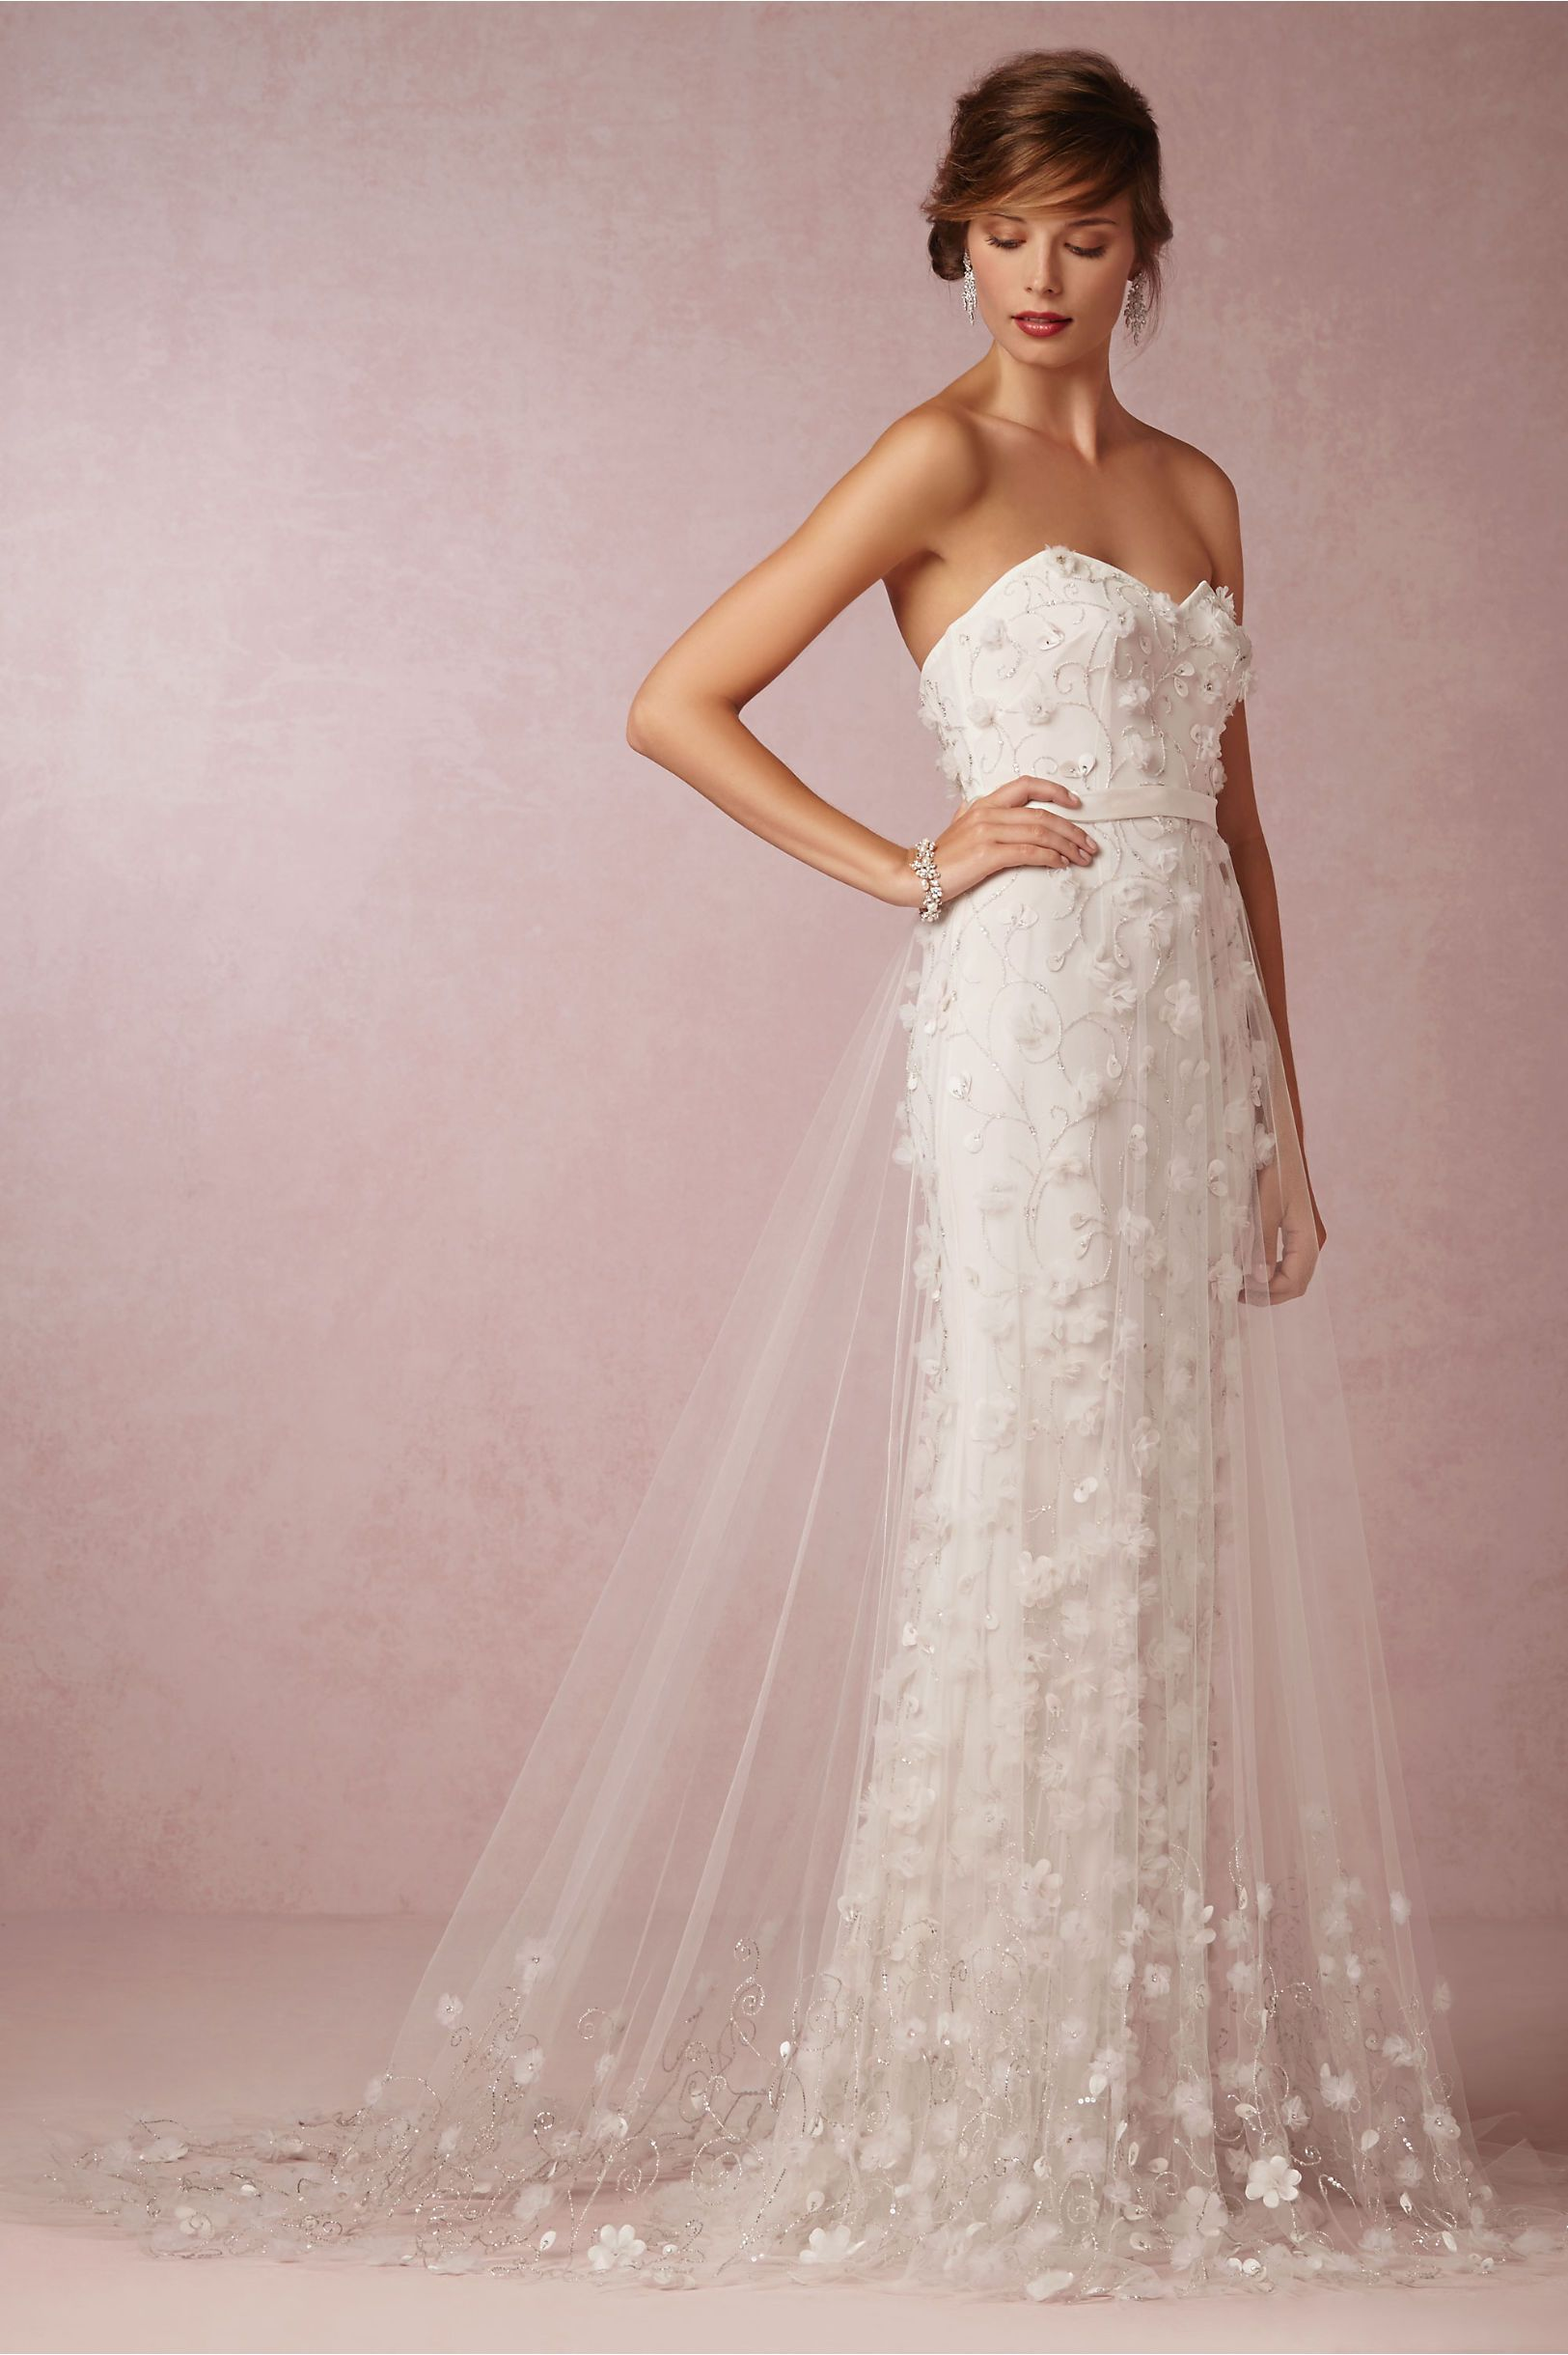 Ava Tulle Skirt By Theia For Bhldn Dress Ideasbridal